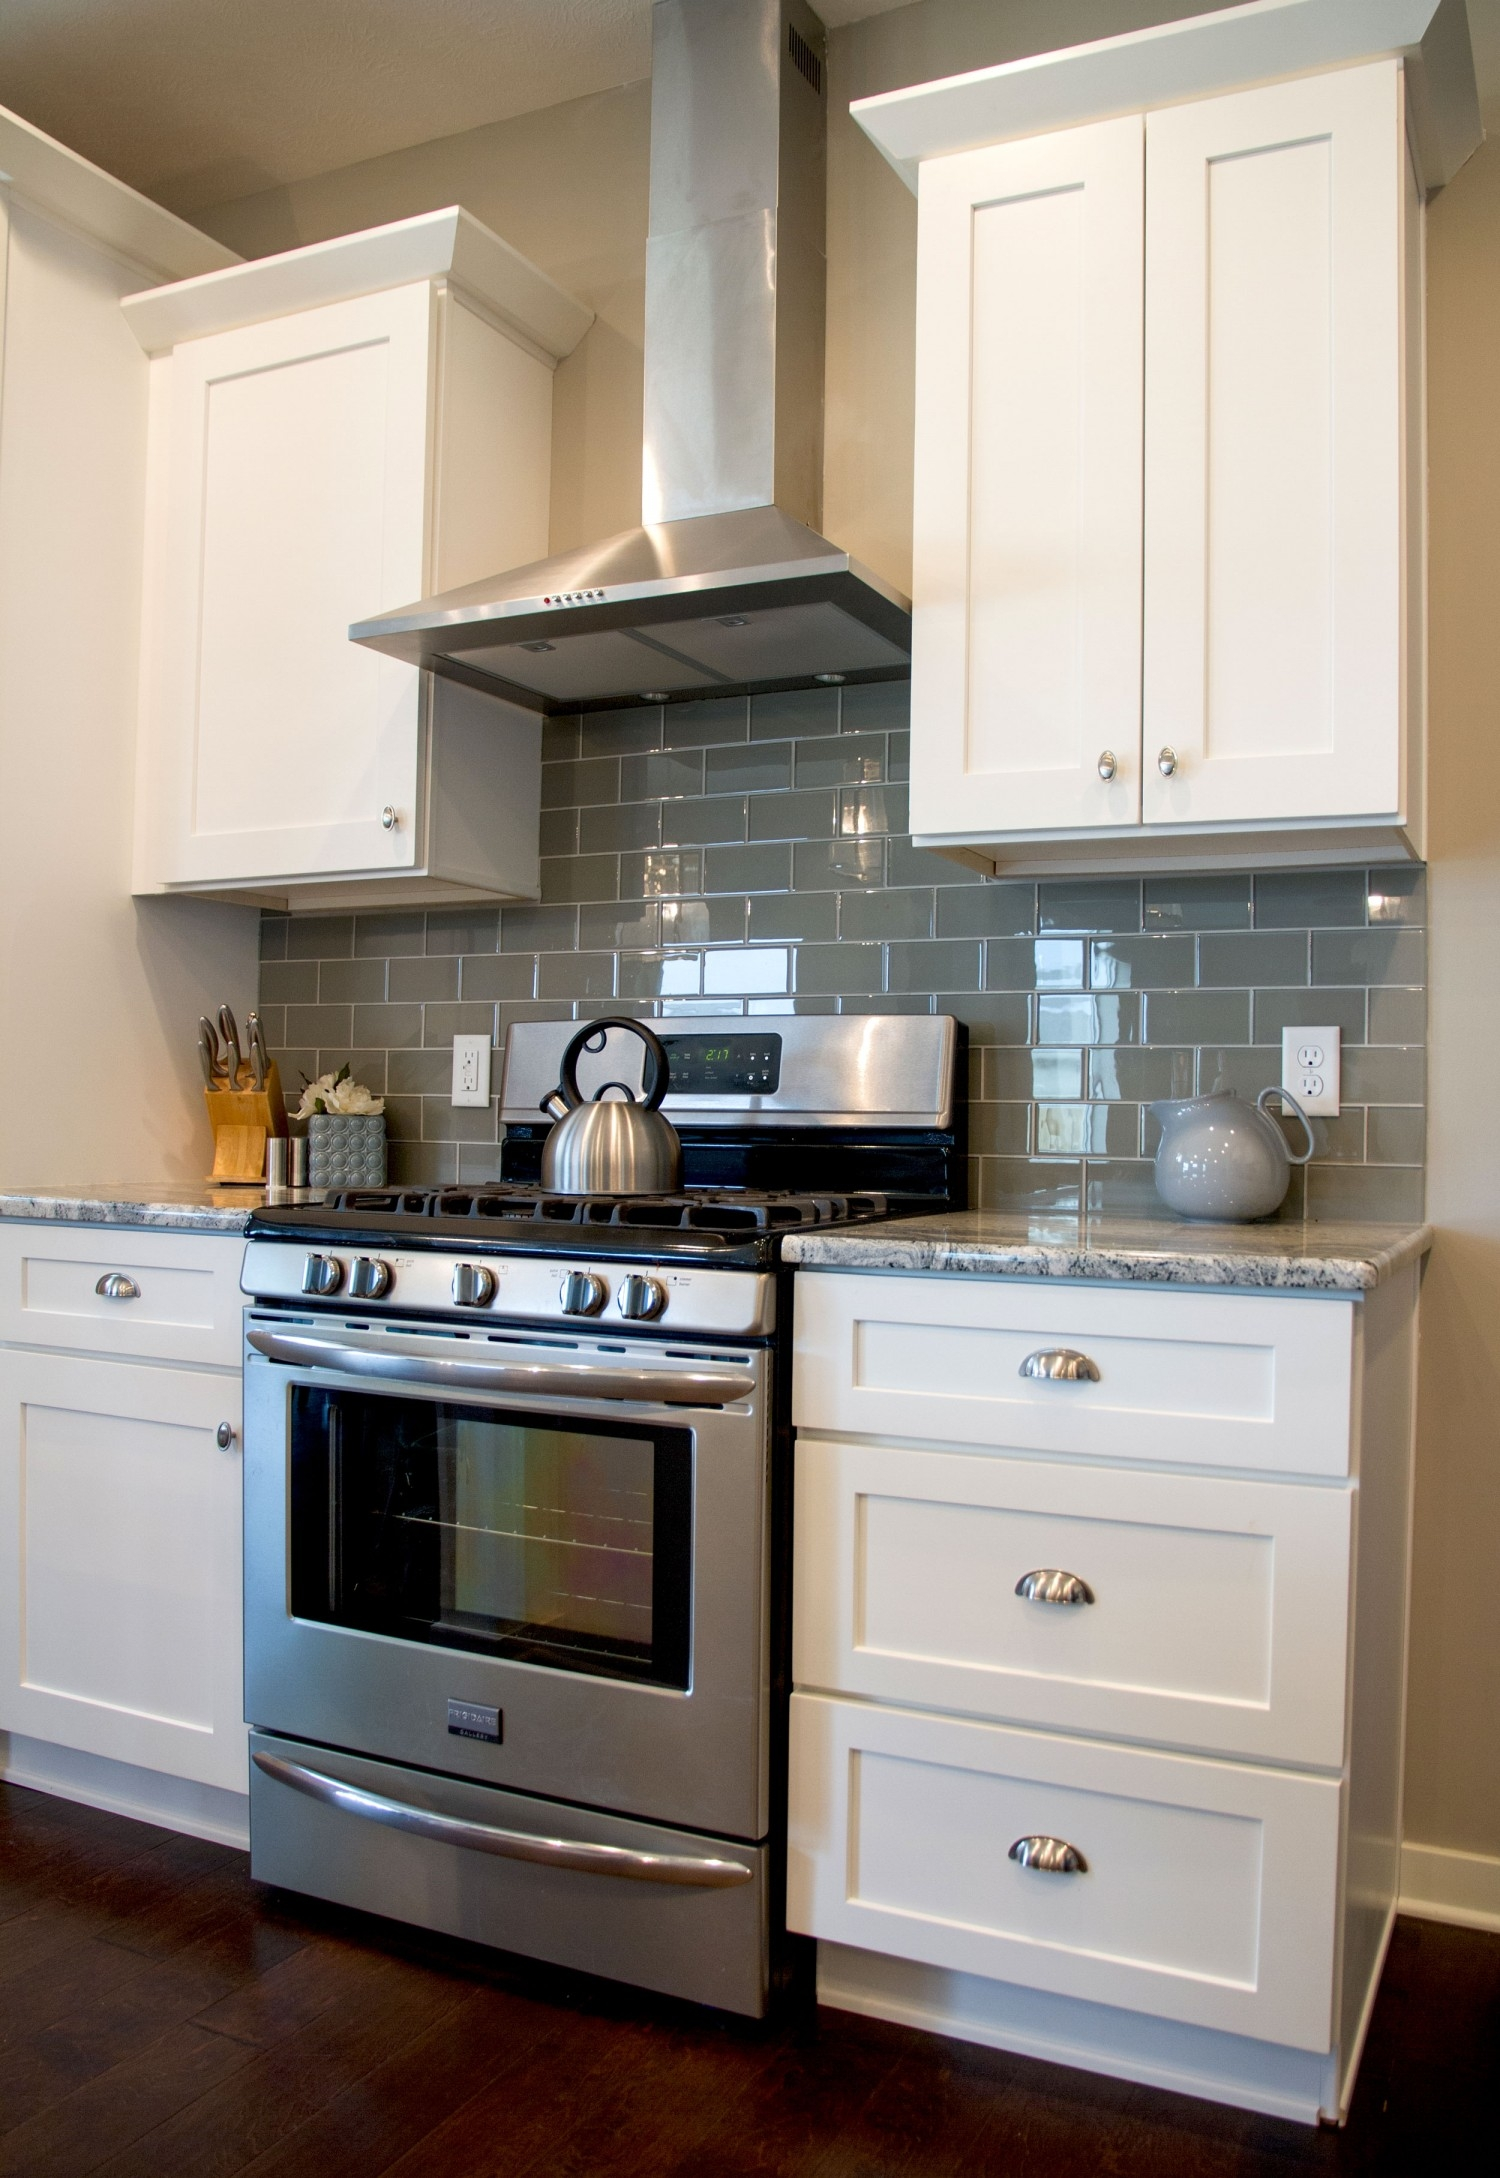 Permalink to 24 Inch Kitchen Wall Cabinets